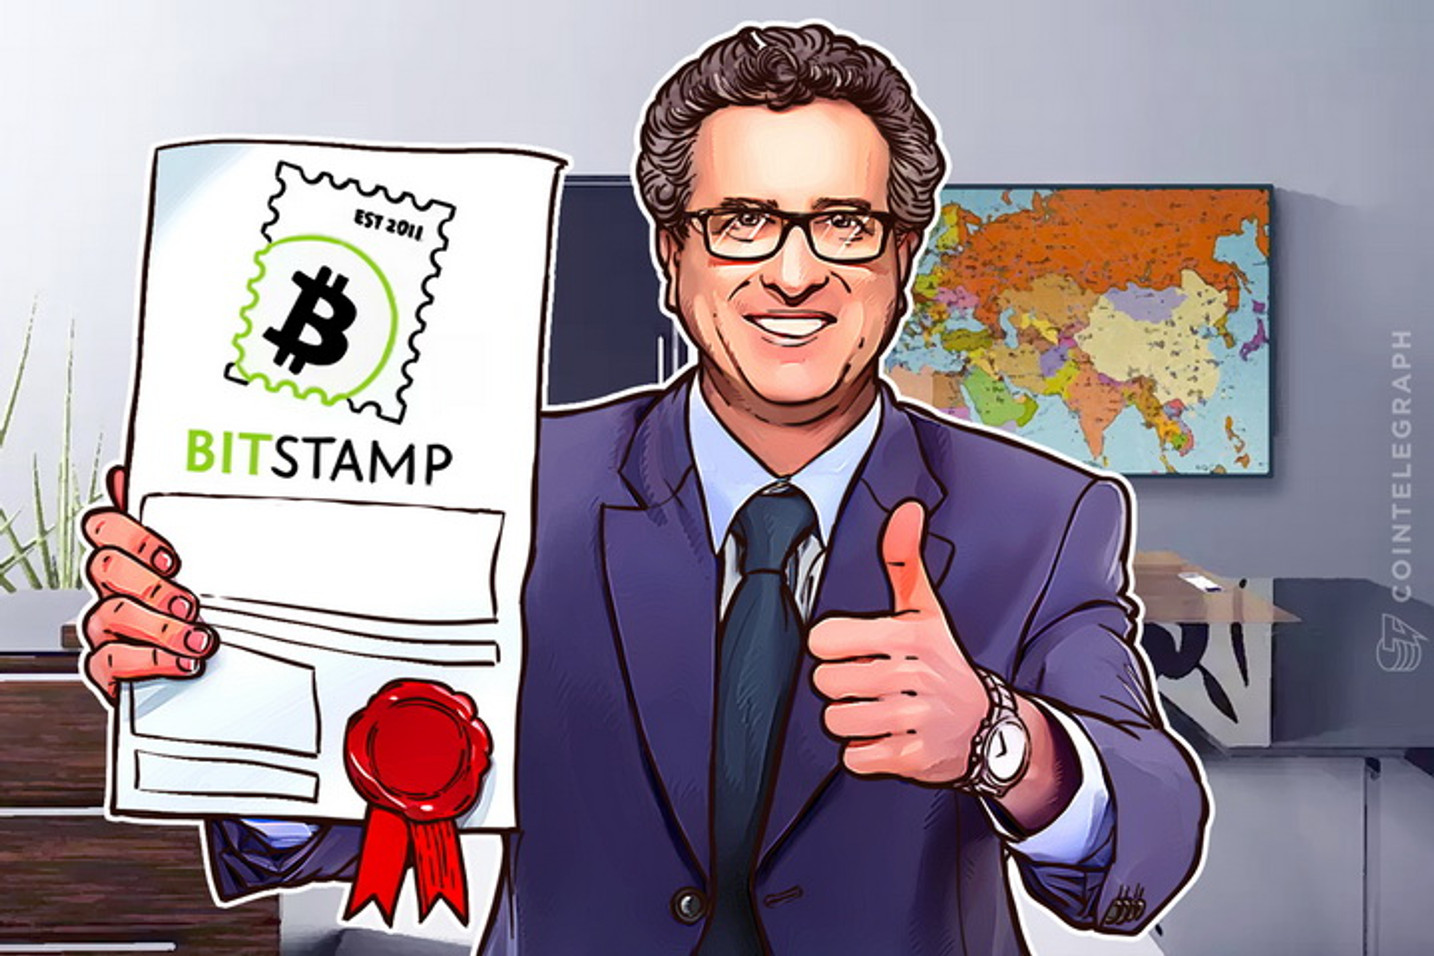 Bitstamp: The First Licensed Bitcoin Exchange of Europe